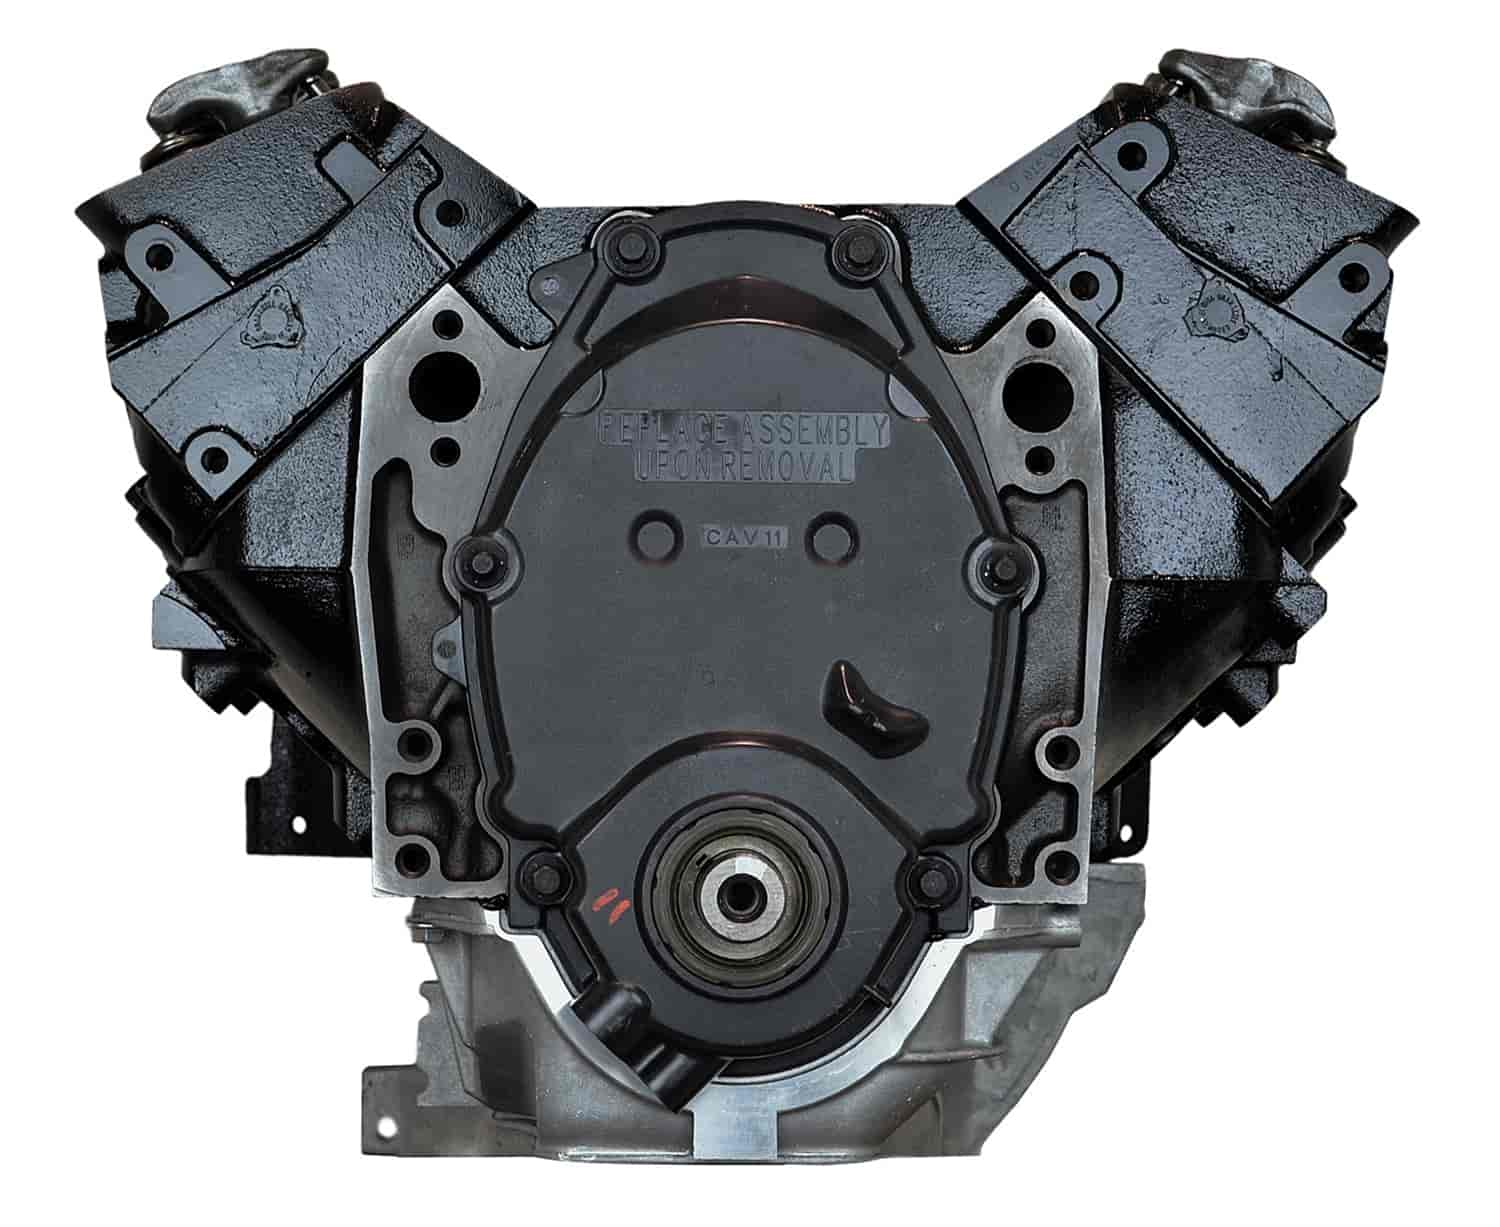 Atk Engines Vcw1 Remanufactured Crate Engine For 1998 1999 Chevy